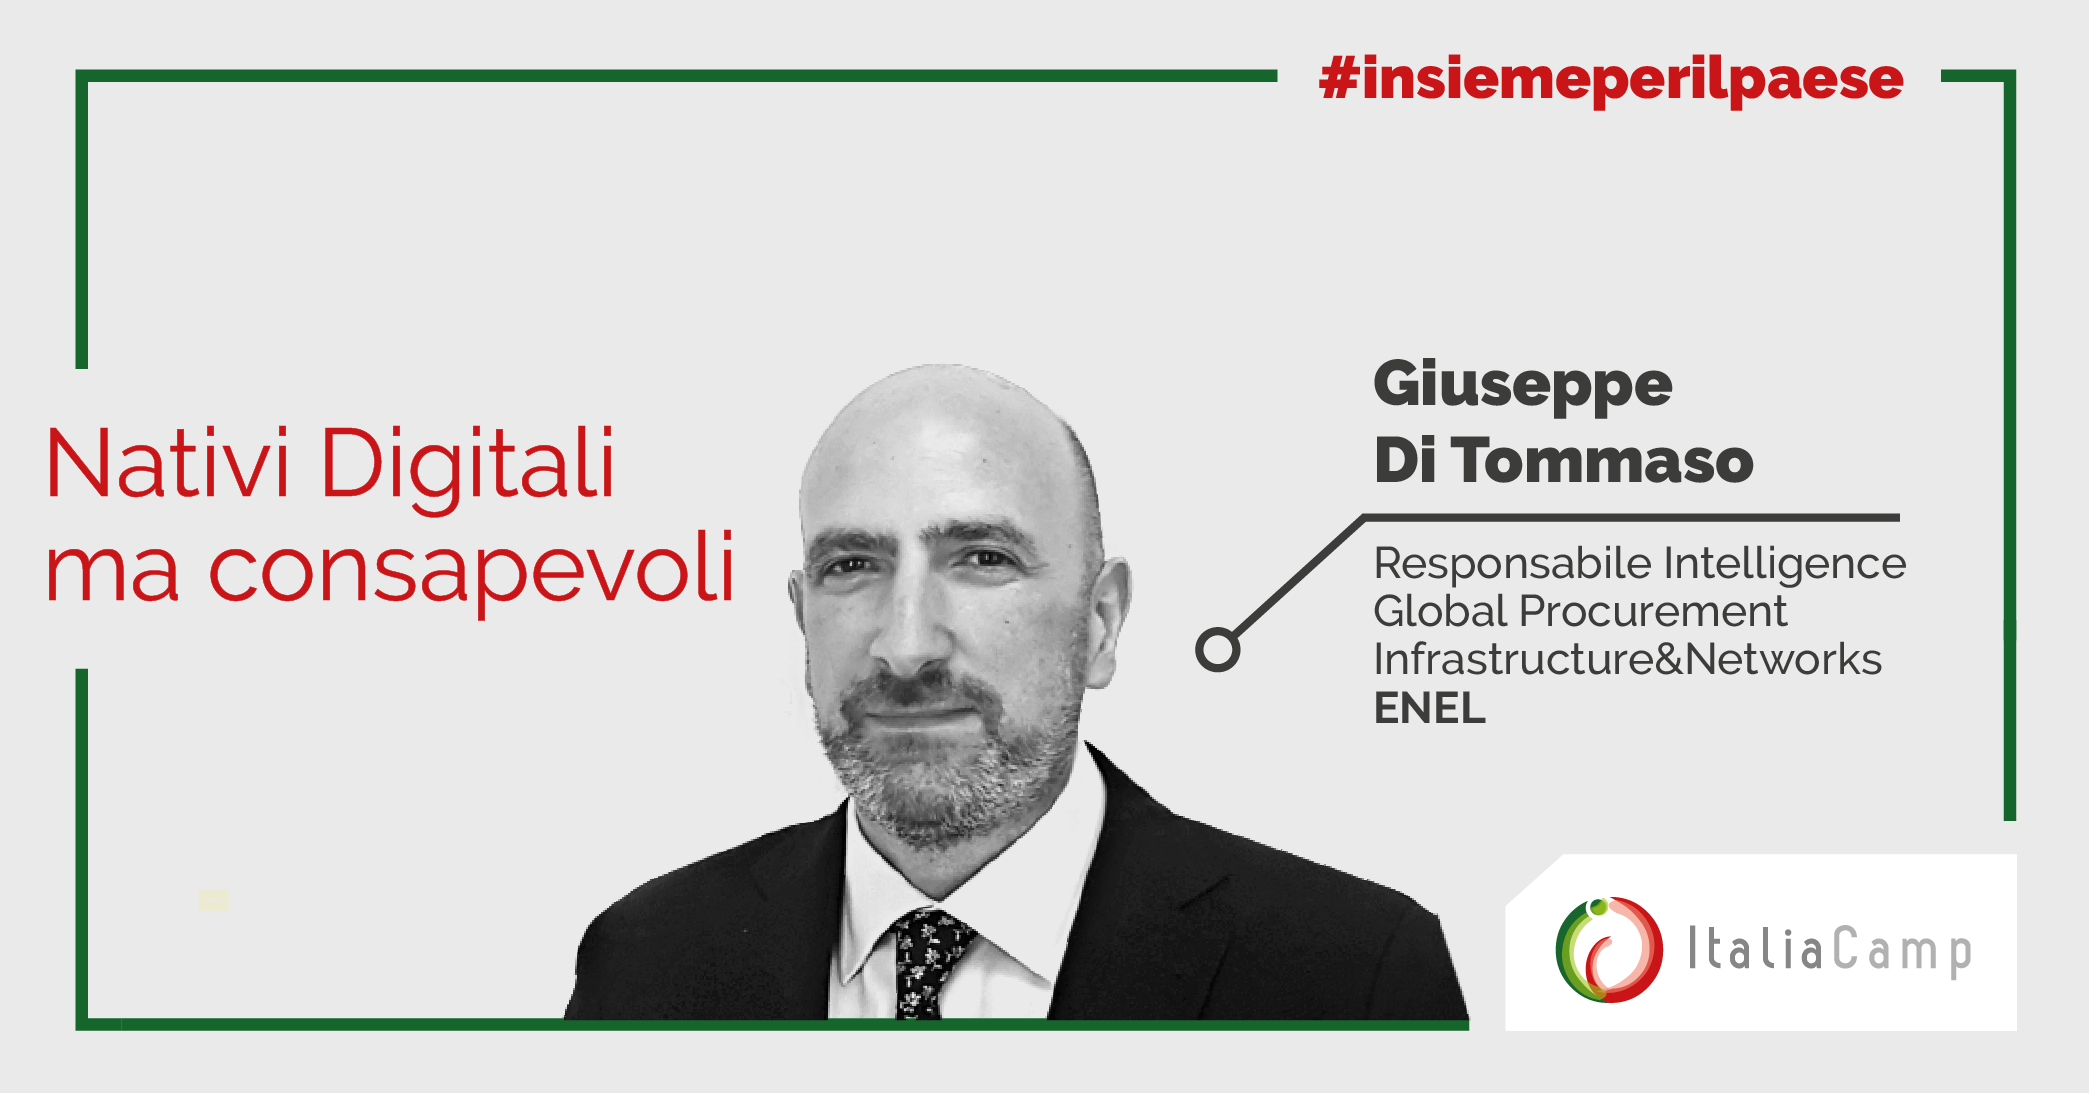 Giuseppe di Tommaso per STEAMcamp online xperience